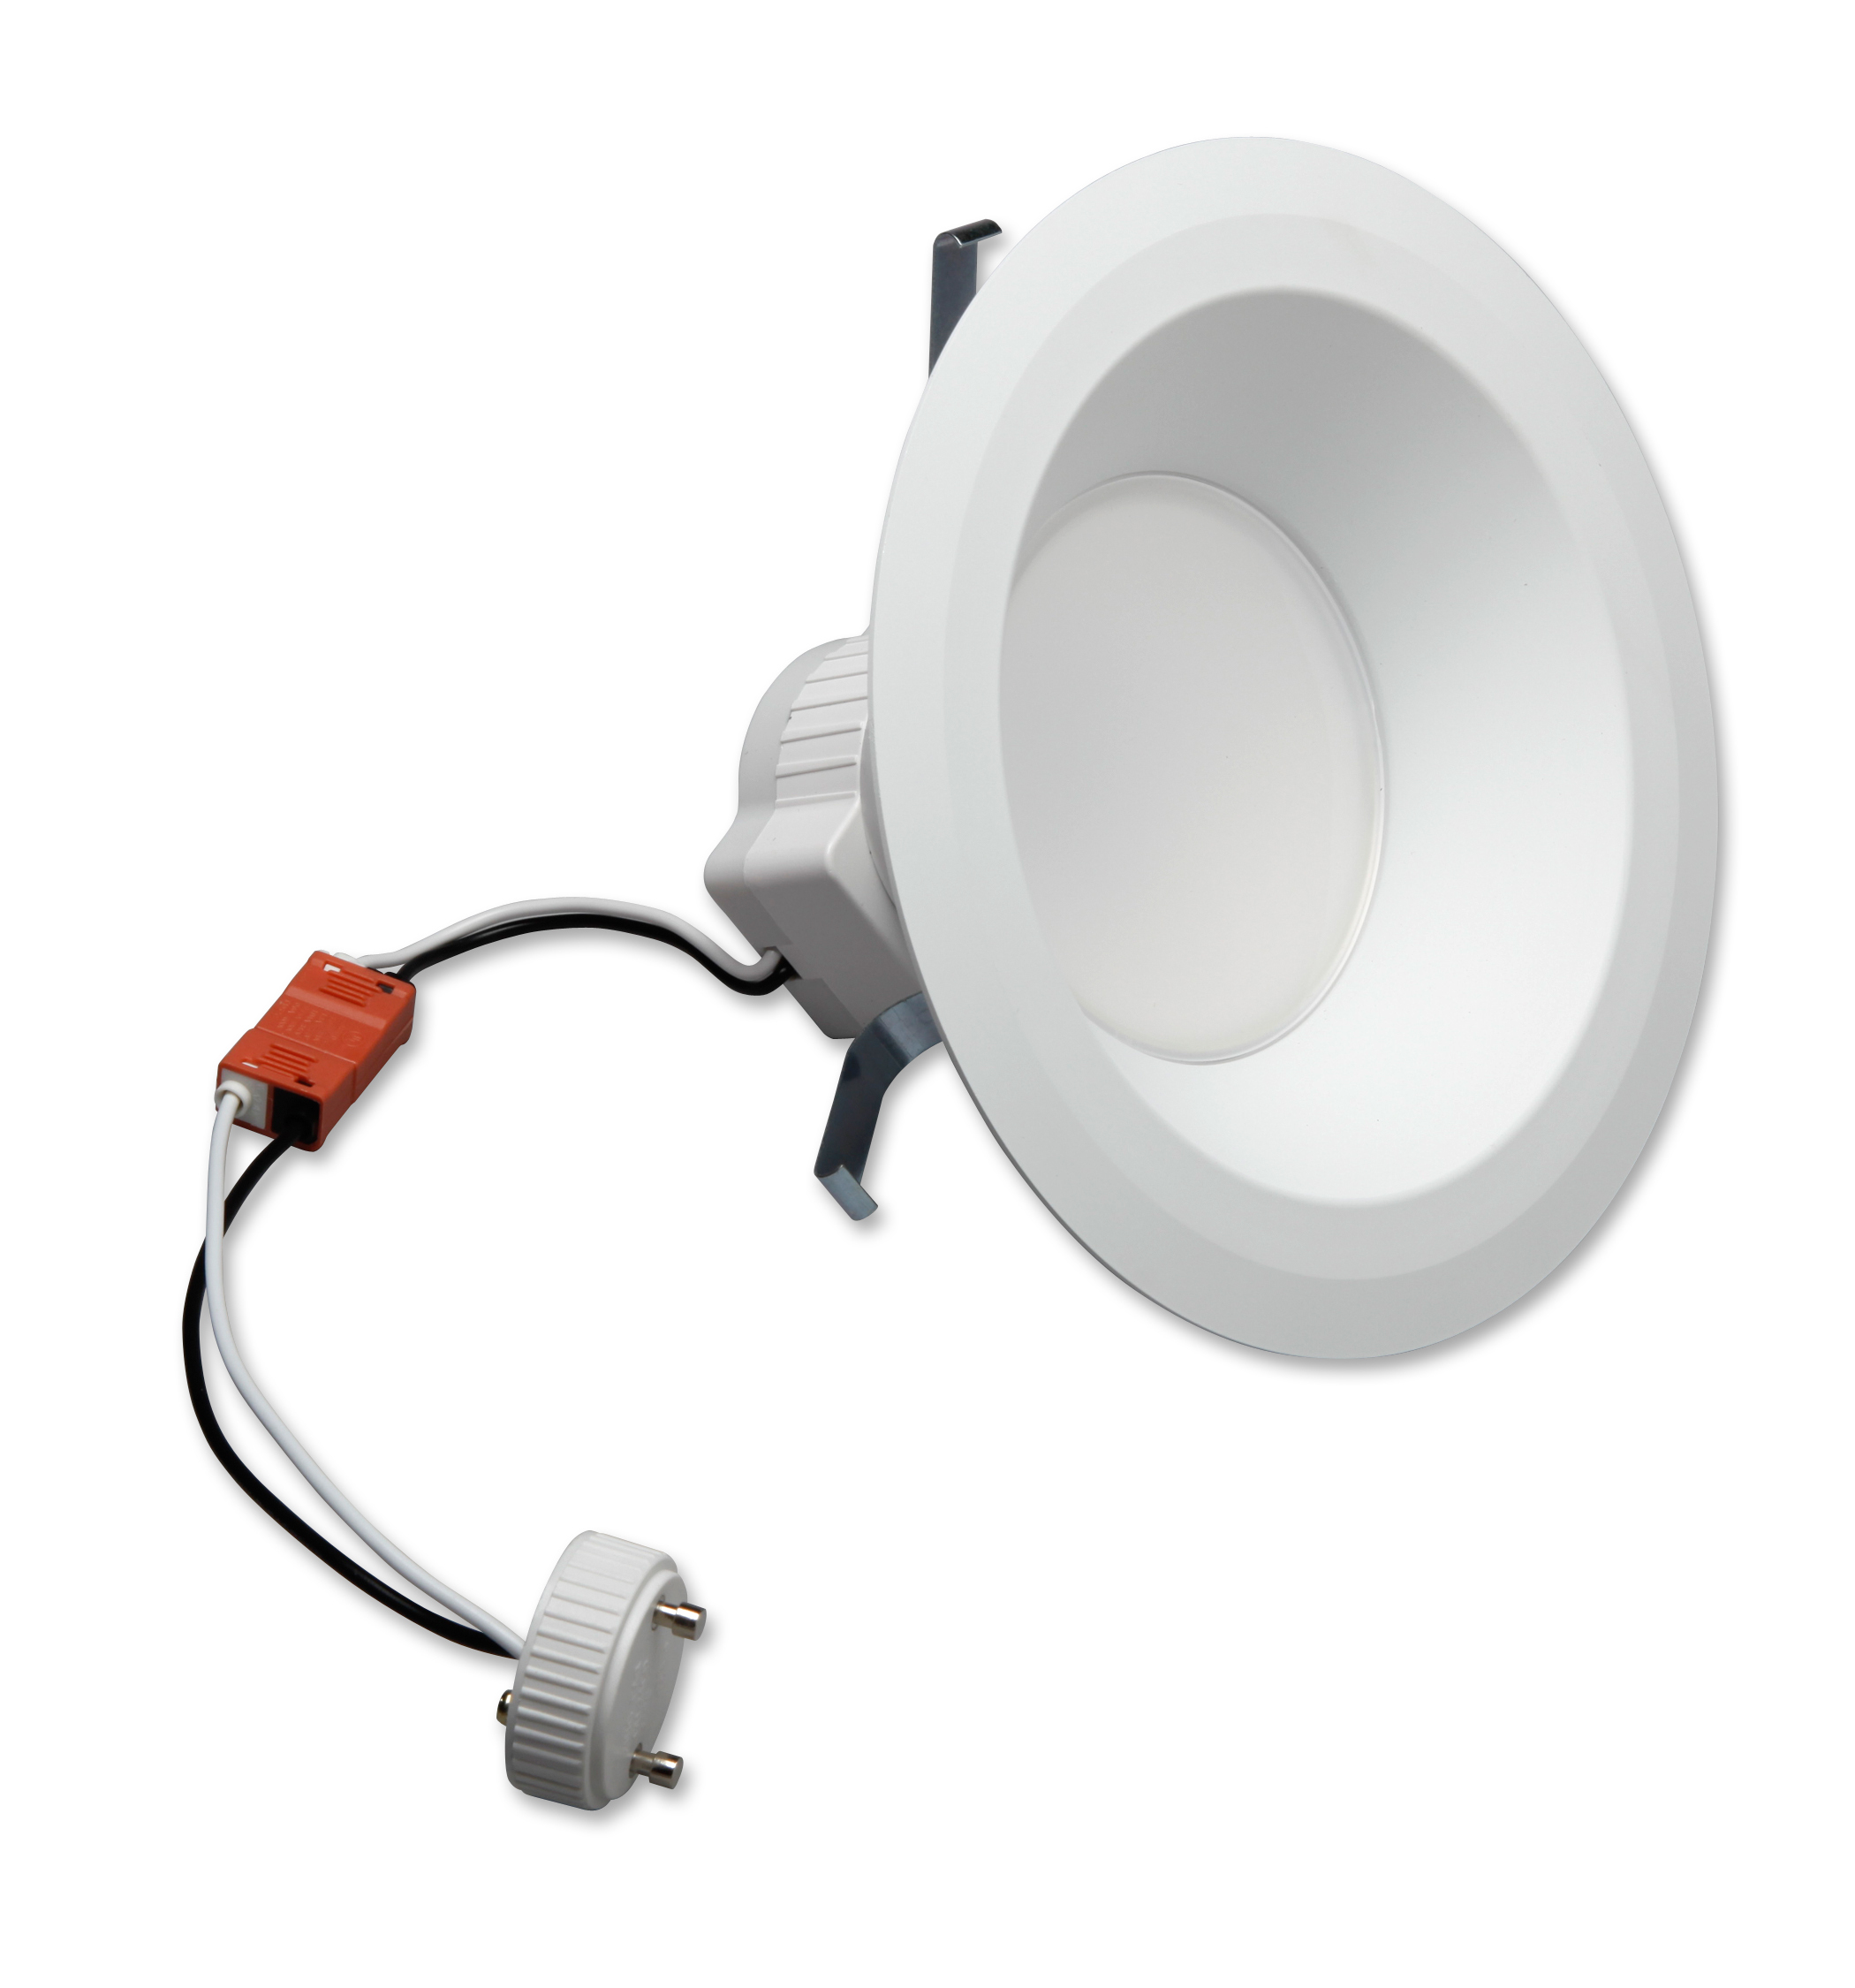 Ges lumination rs series led downlights provide easy to install ges lumination rs series led downlights provide easy to install options for retrofit projects in residential and commercial spaces business wire aloadofball Images